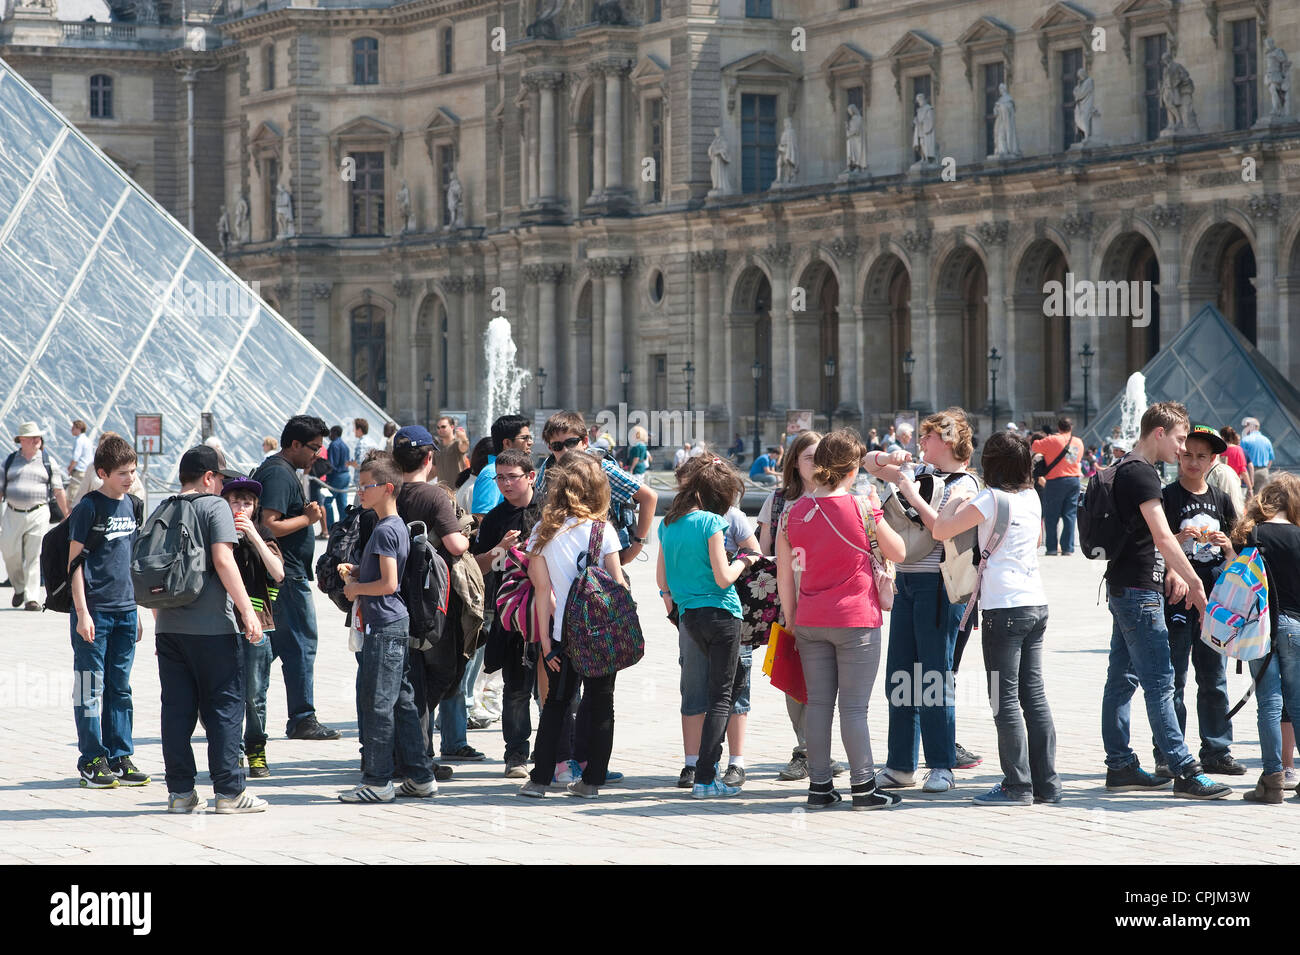 Paris, France -  A group of students visiting Paris in front of the Louvre Museum. - Stock Image